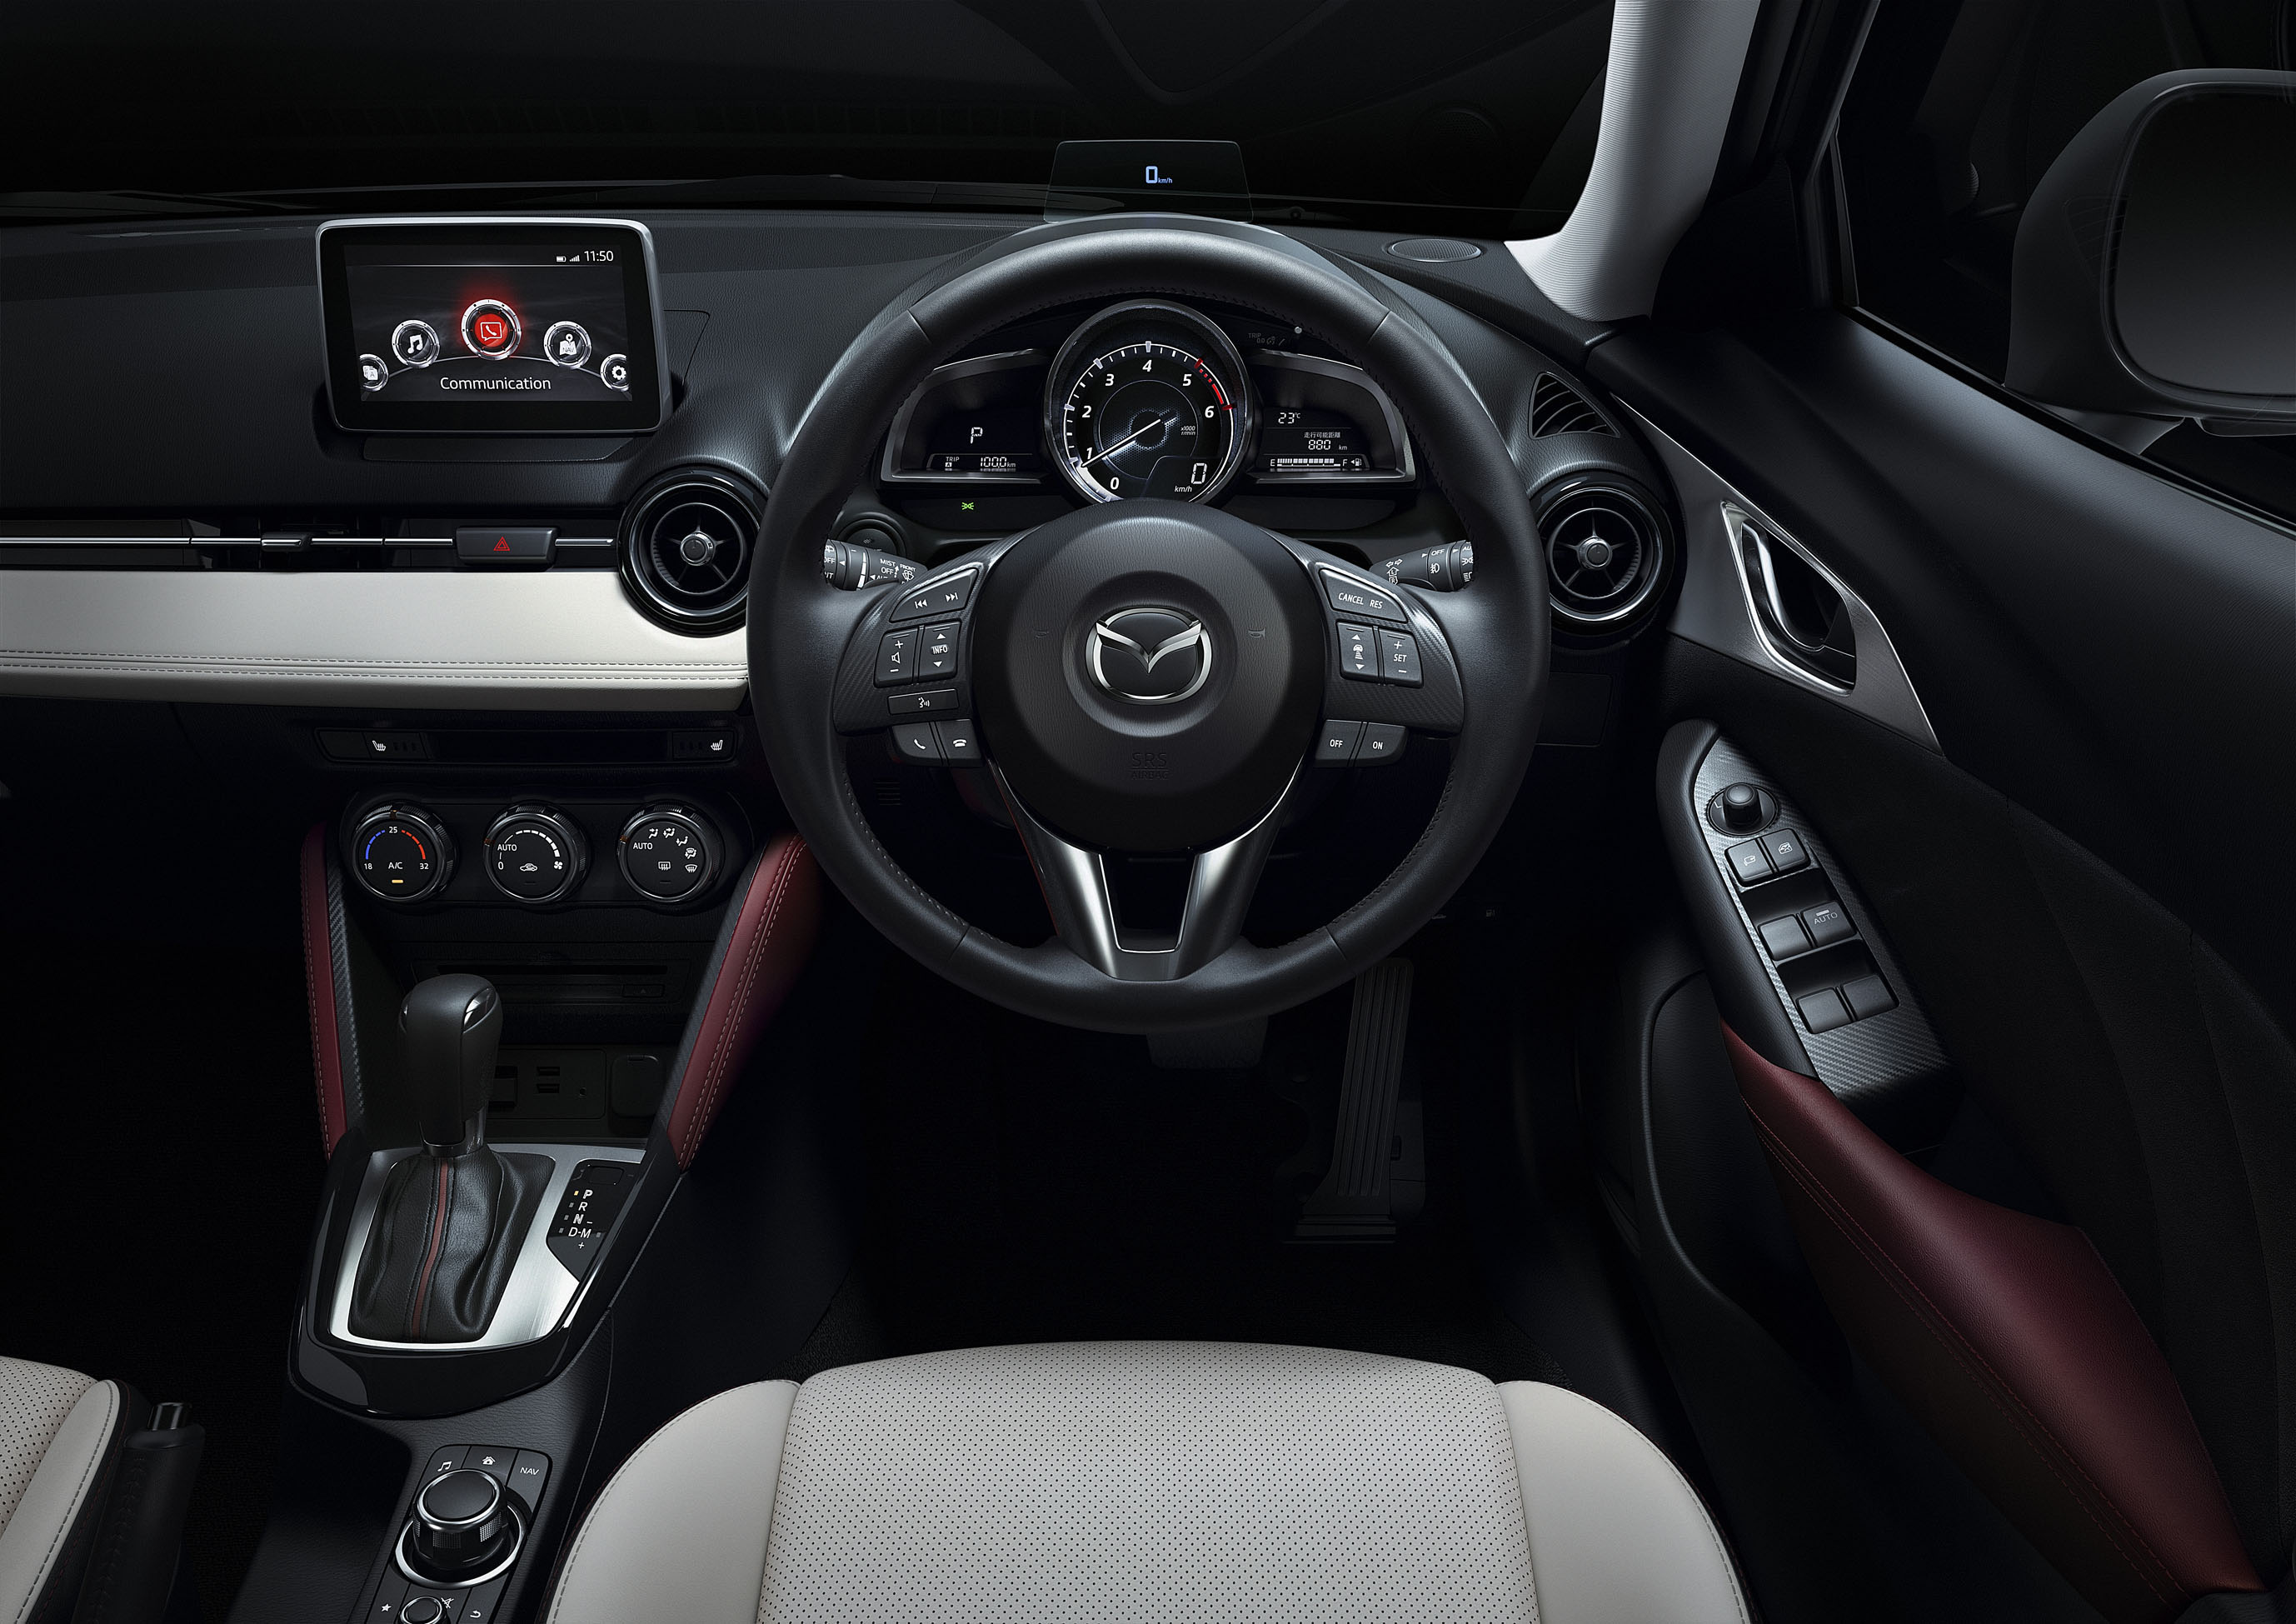 mazda cx 3 new b segment suv officially unveiled image 289177. Black Bedroom Furniture Sets. Home Design Ideas